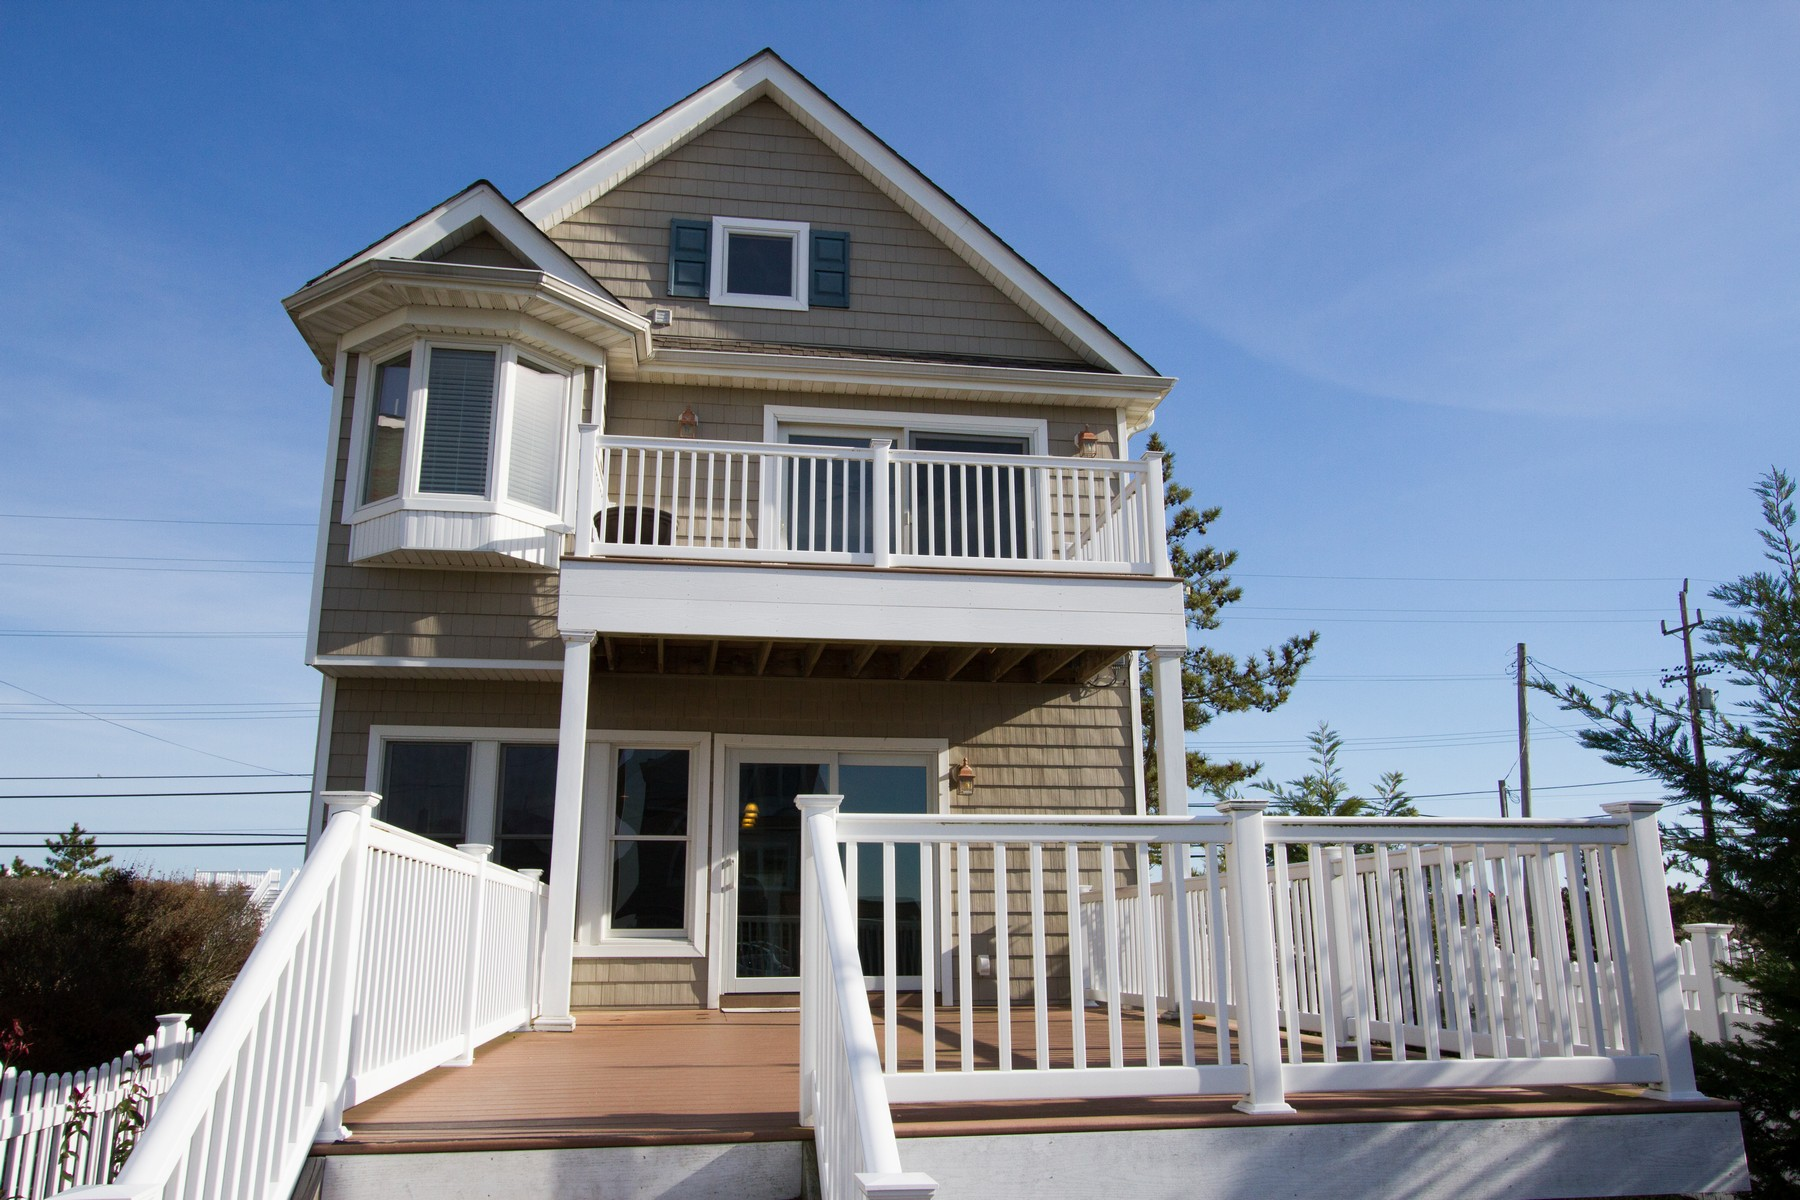 Maison unifamiliale pour l Vente à Renovated Beach Colonial 616 Ocean Ave Sea Bright, New Jersey 07760 États-Unis